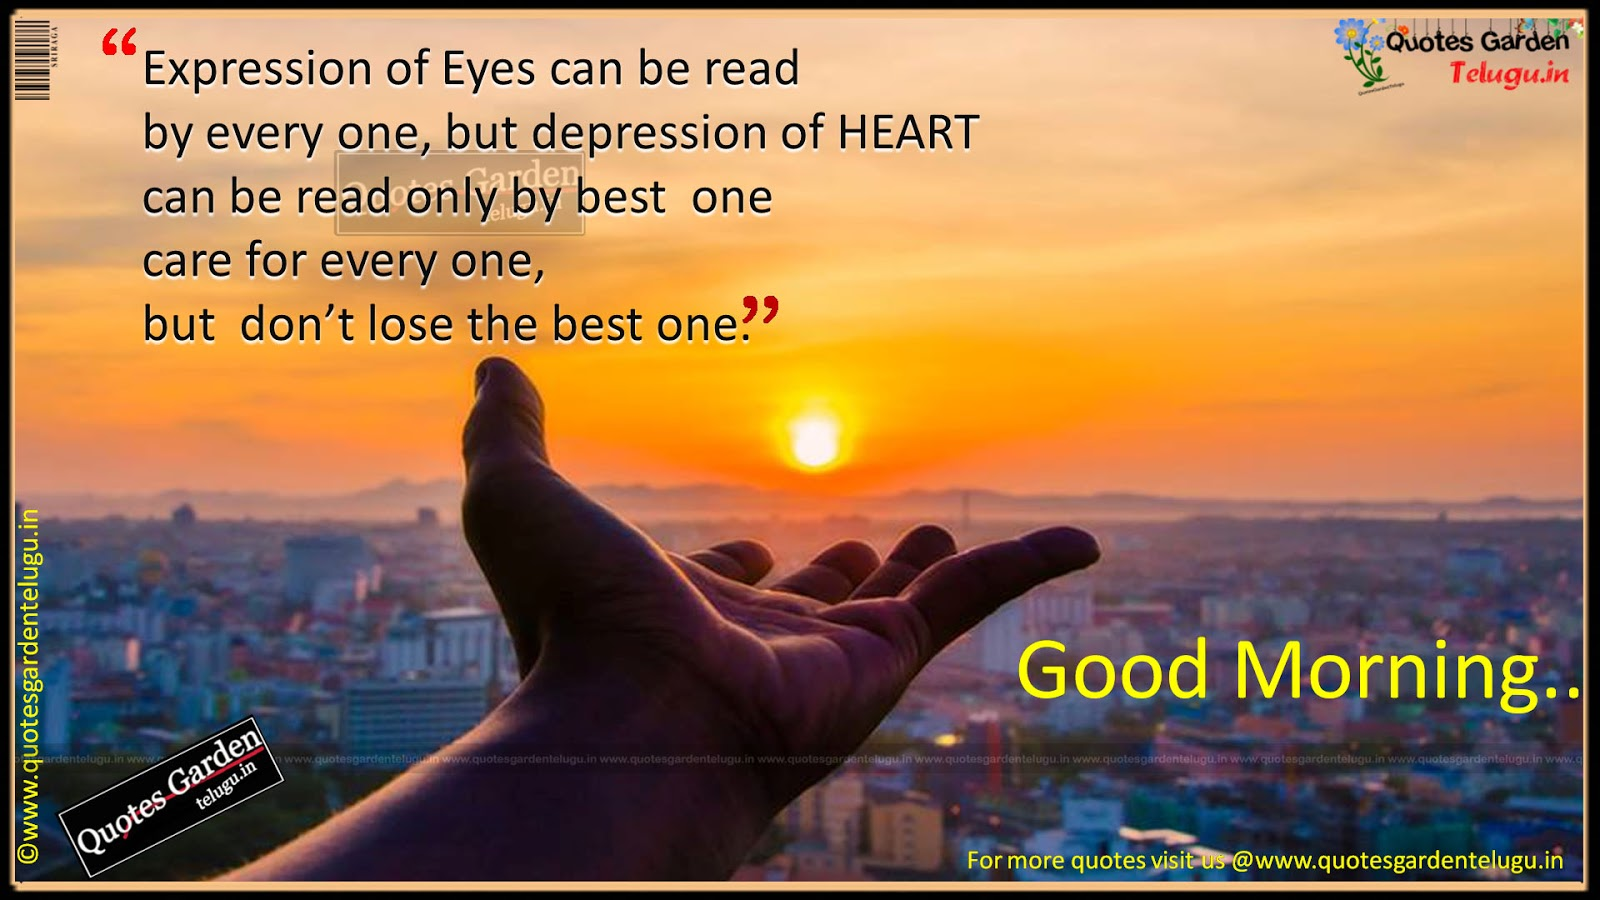 Best good morning messages sms quotes for whatsapp quotes garden best good morning messages sms quotes for whatsapp m4hsunfo